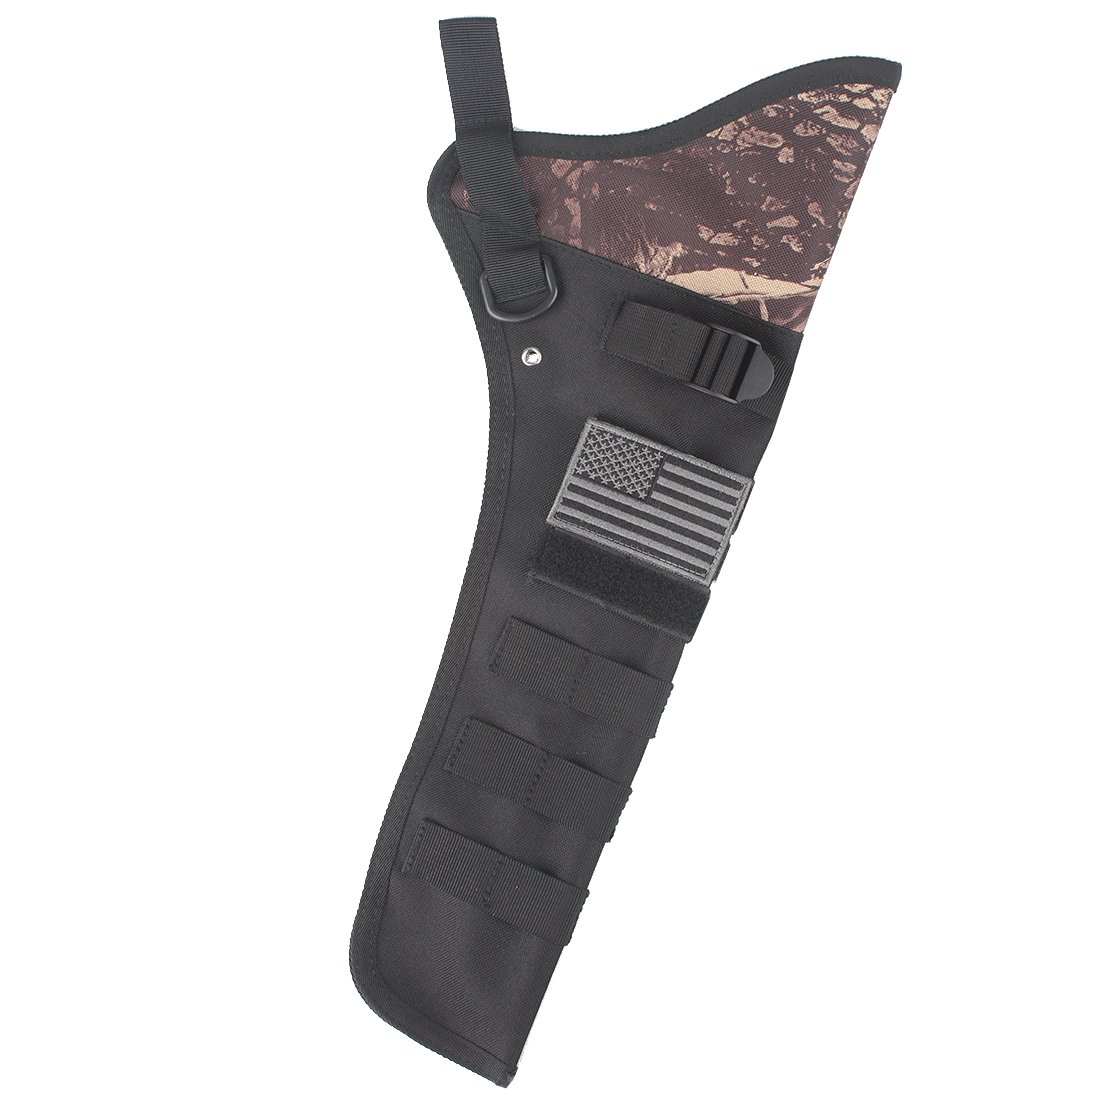 KRATARC Archery Lightweight Hip Arrow Quiver Foldable Compact Arrows Bag with Molle System Hanged for Target Shooting (Camo)